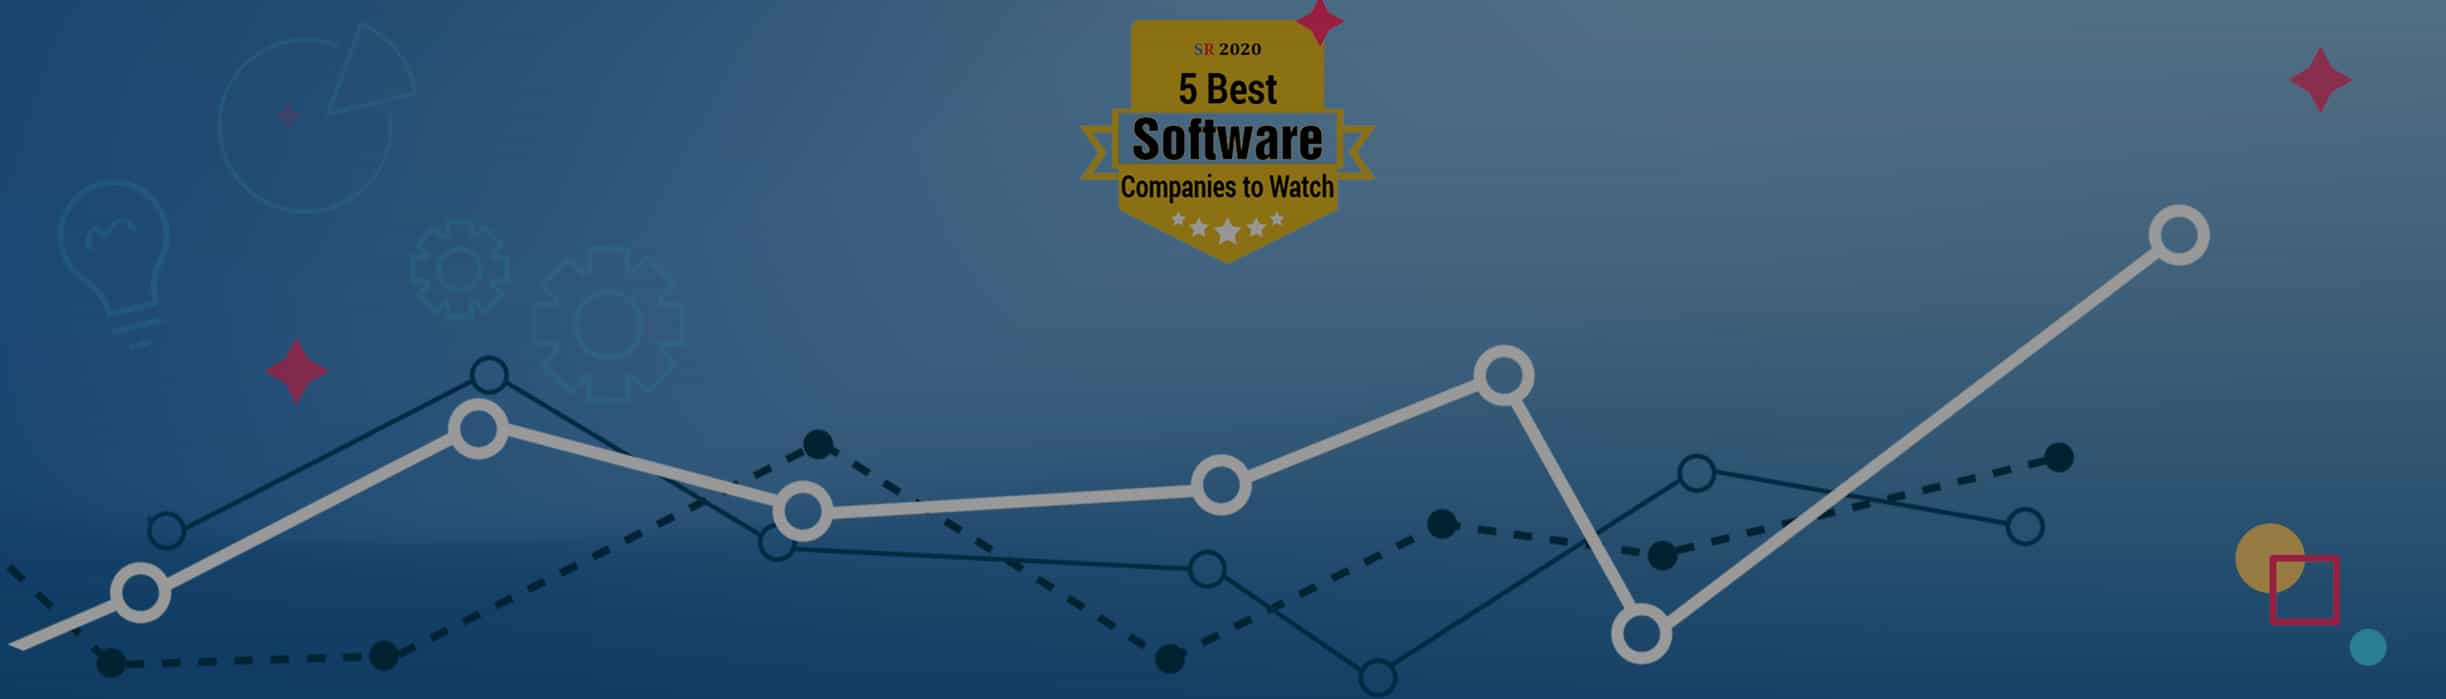 5 BEST SOFTWARE COMPANIES 2020